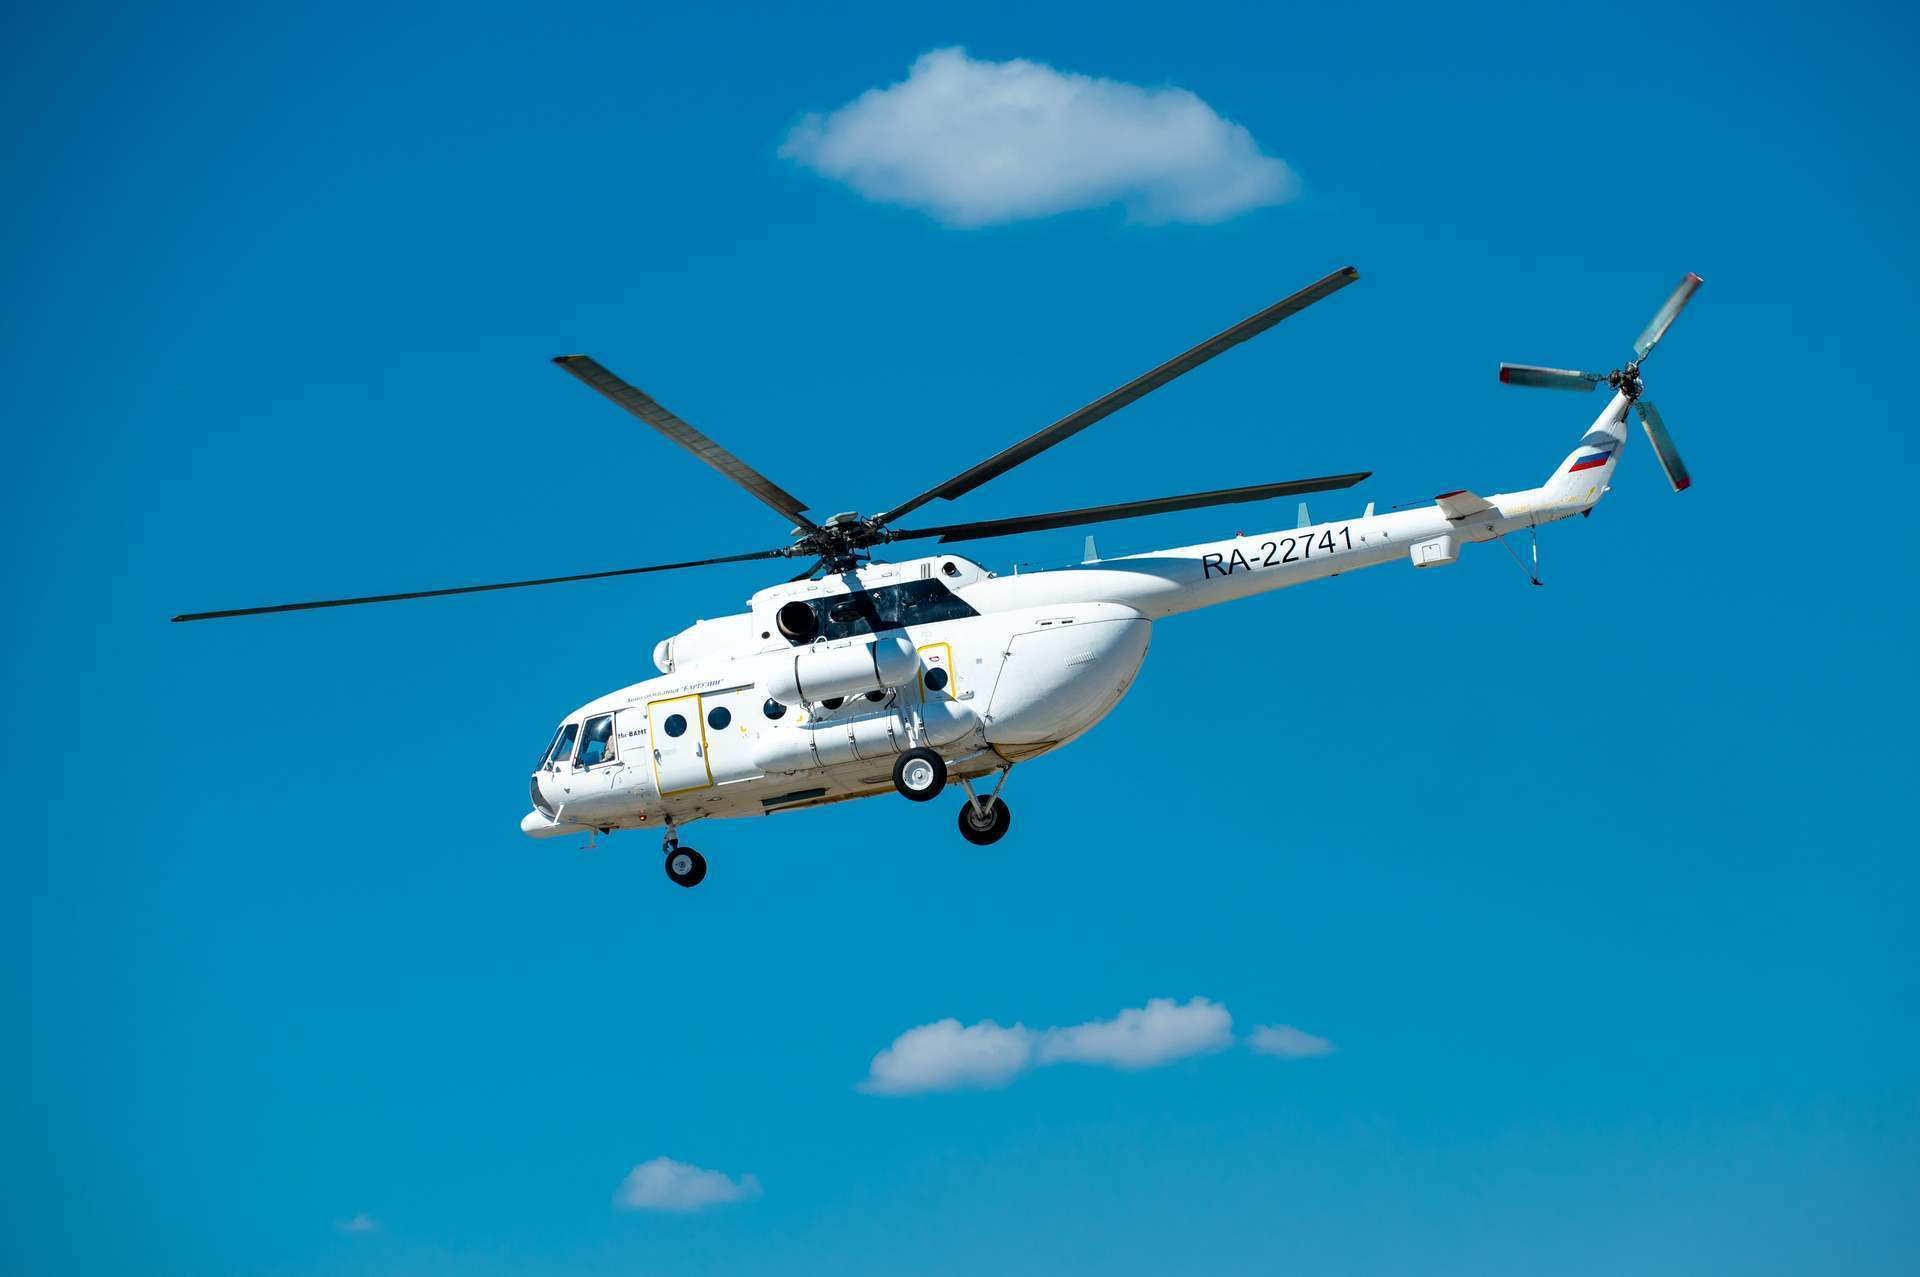 Mil Moscow Helicopter Plant and UTair-Engineering signed an agreement on upgrading Mi-8/17 helicopters